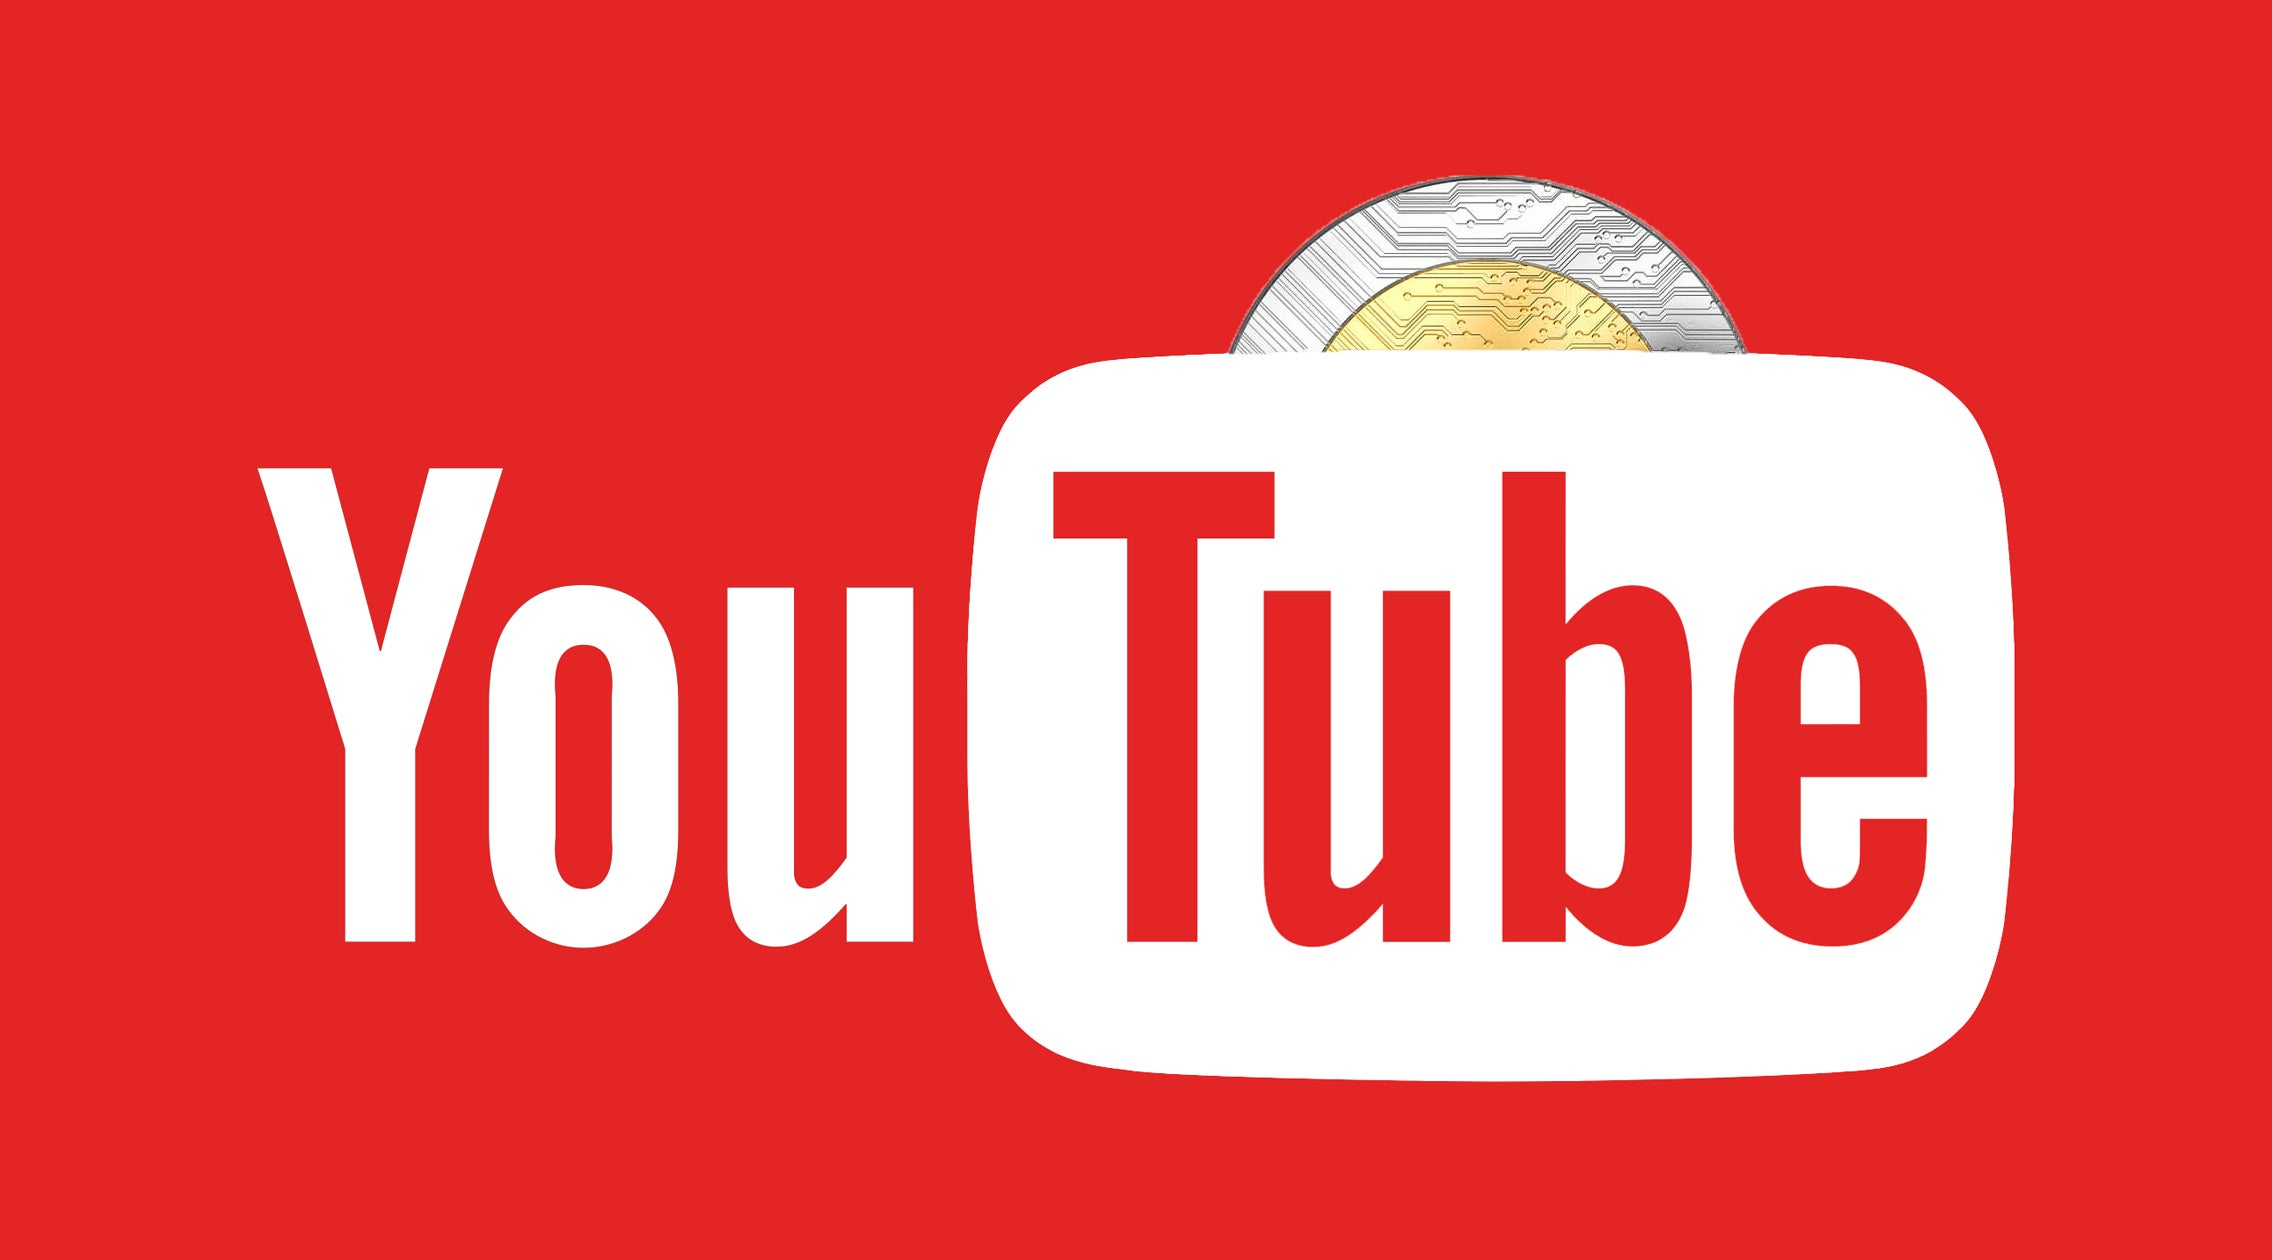 YouTube Ads Targeted By Cryptocurrency Malware